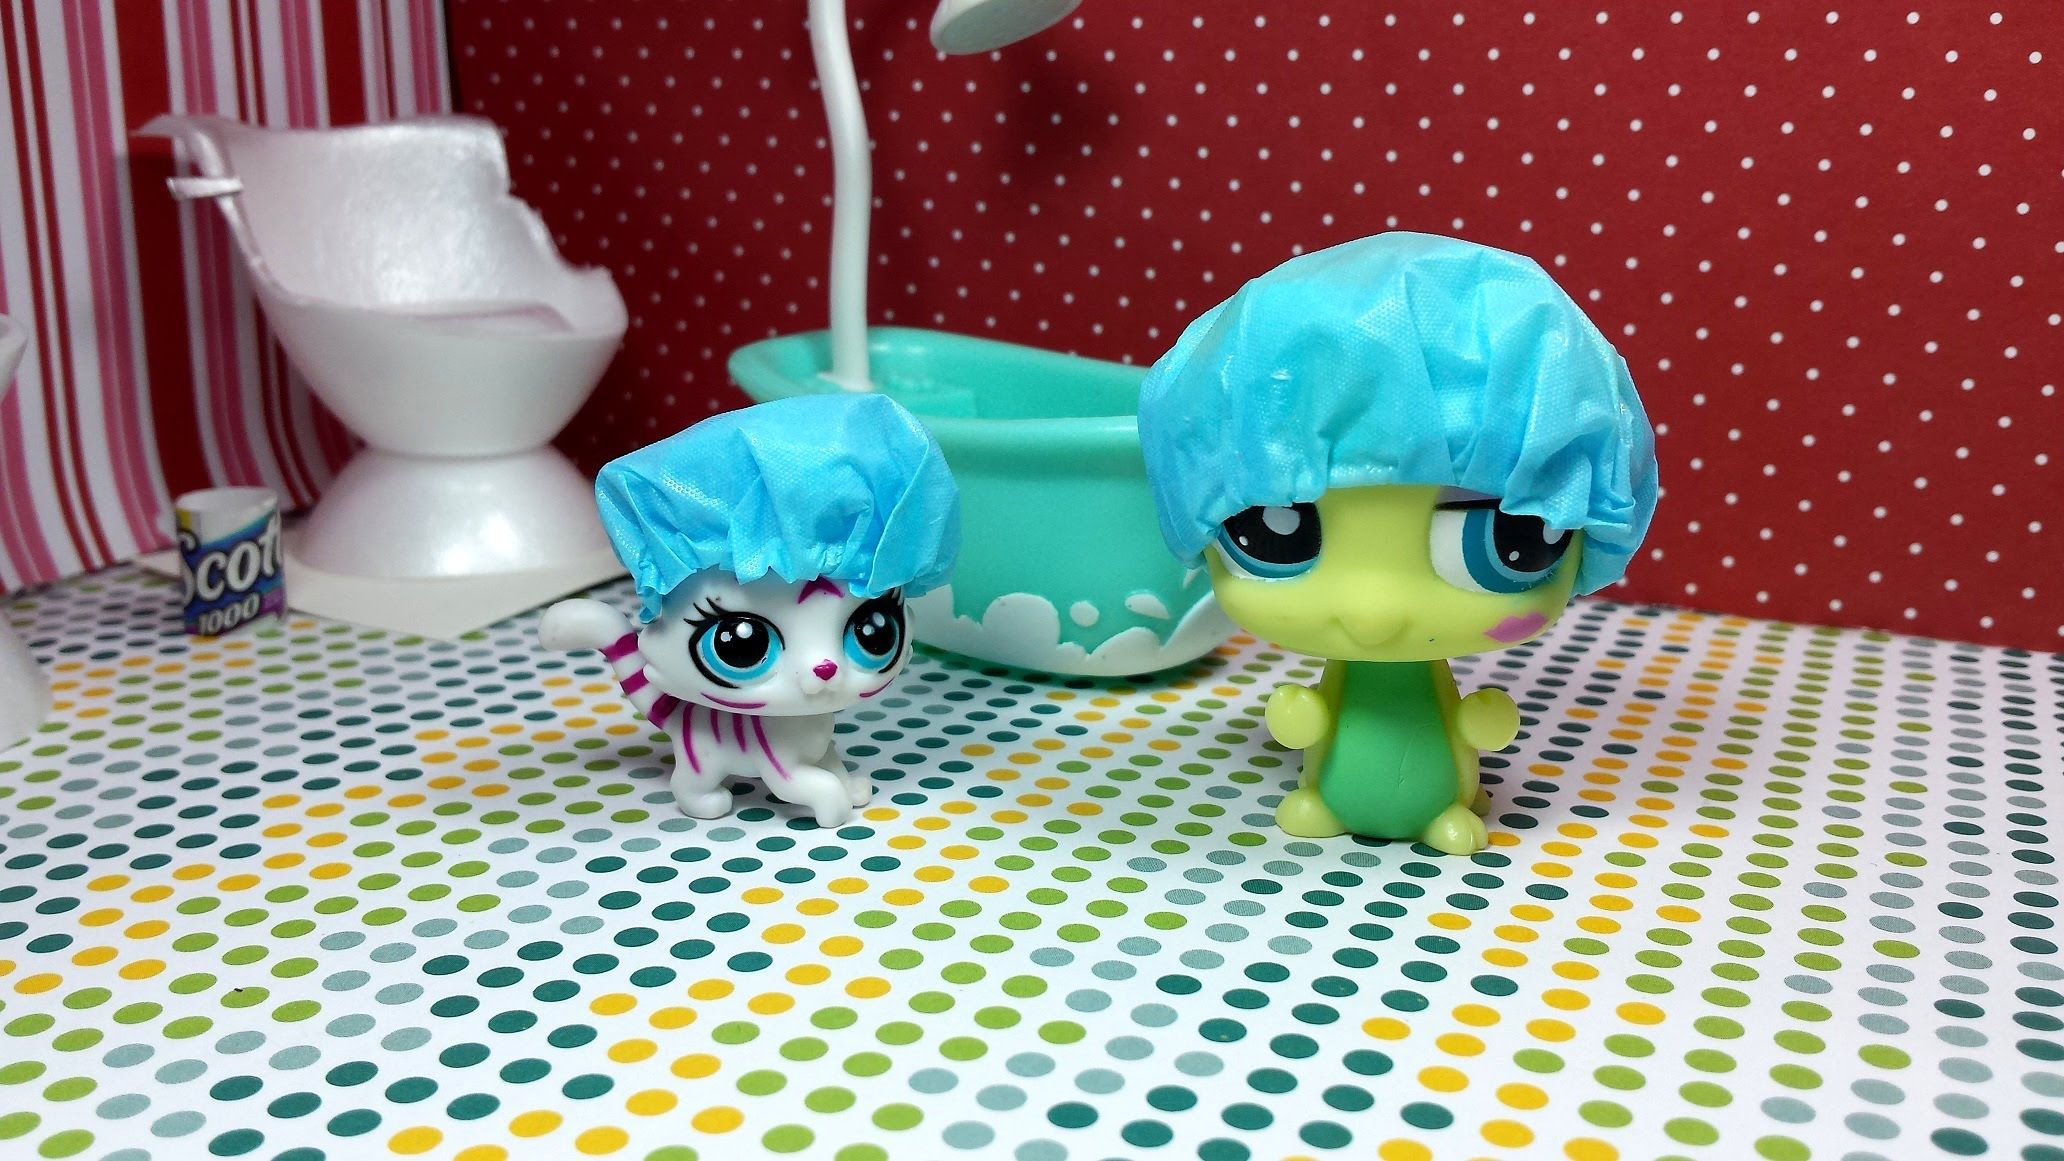 Easy DIY Custom LPS Doll Accessories How to Make a Tiny Shower